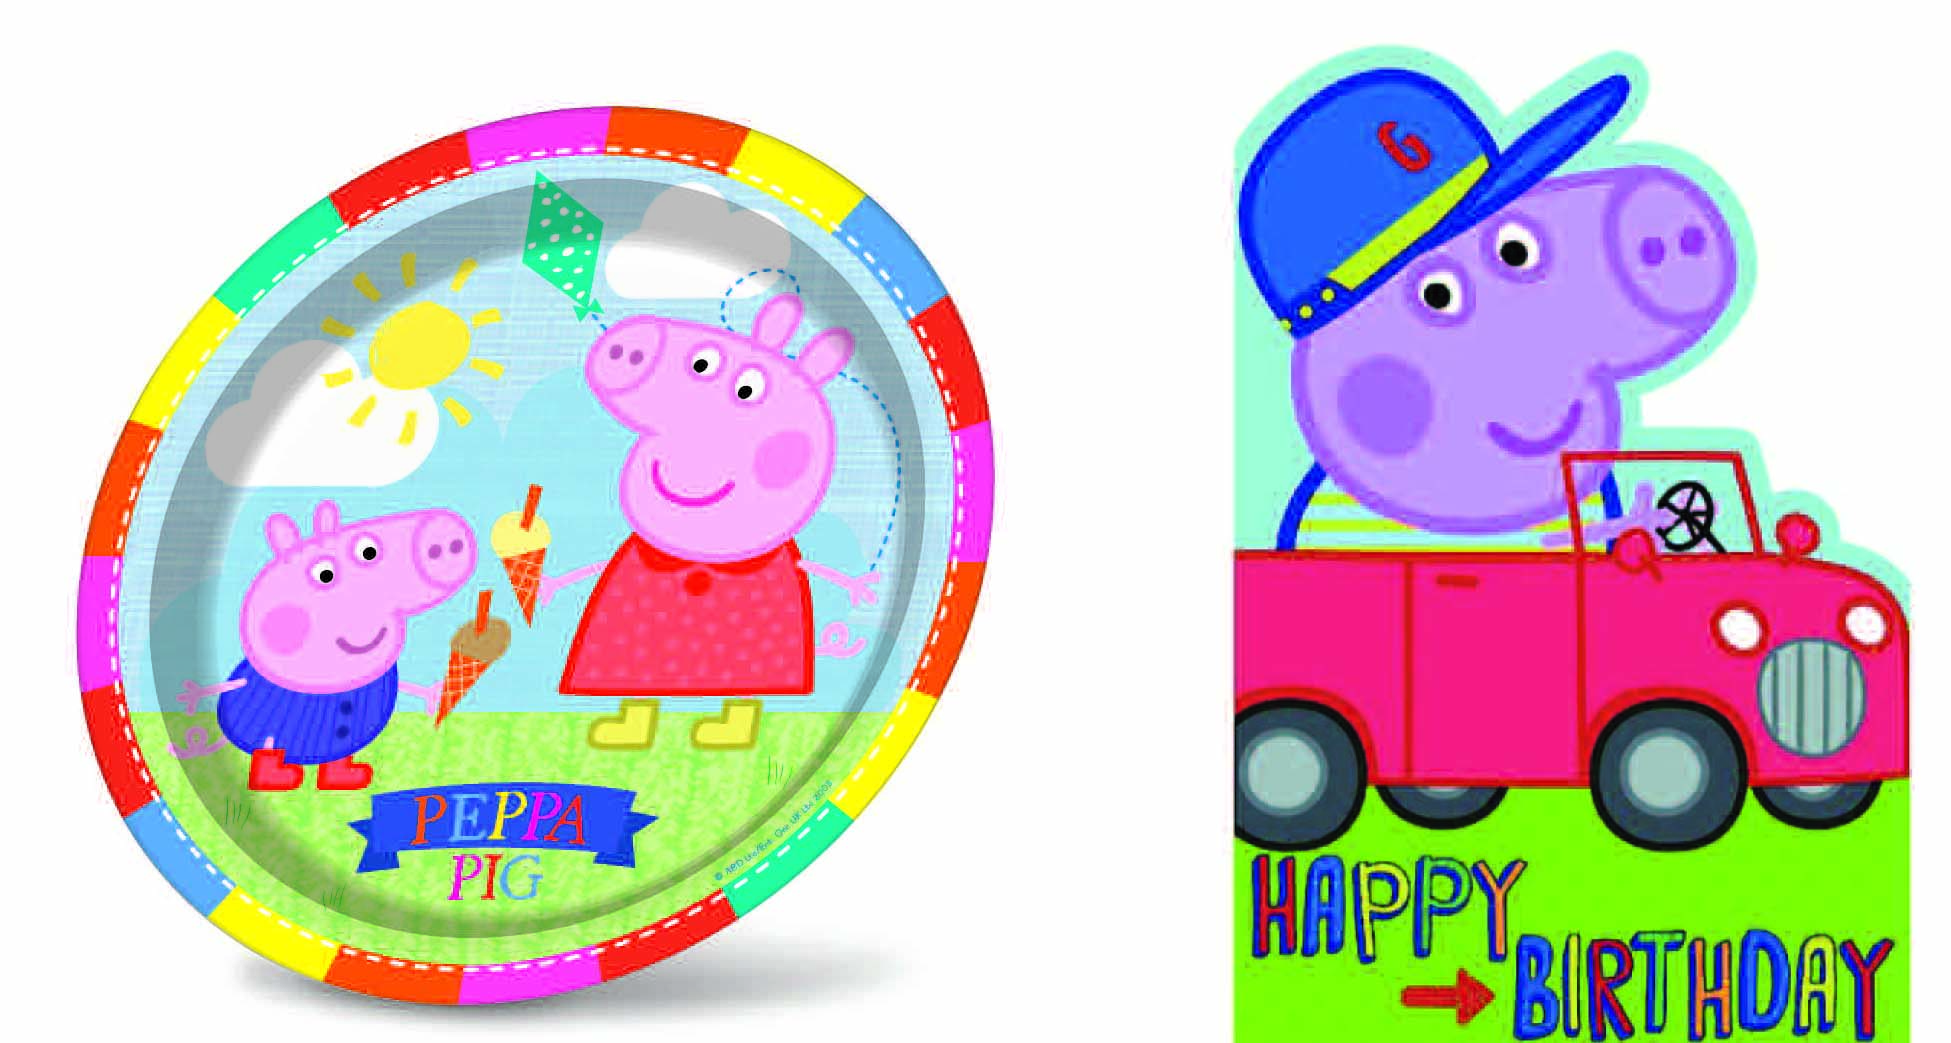 Above: Gemma's licensing agreement with eOne for Peppa was one of its licensing strengths.